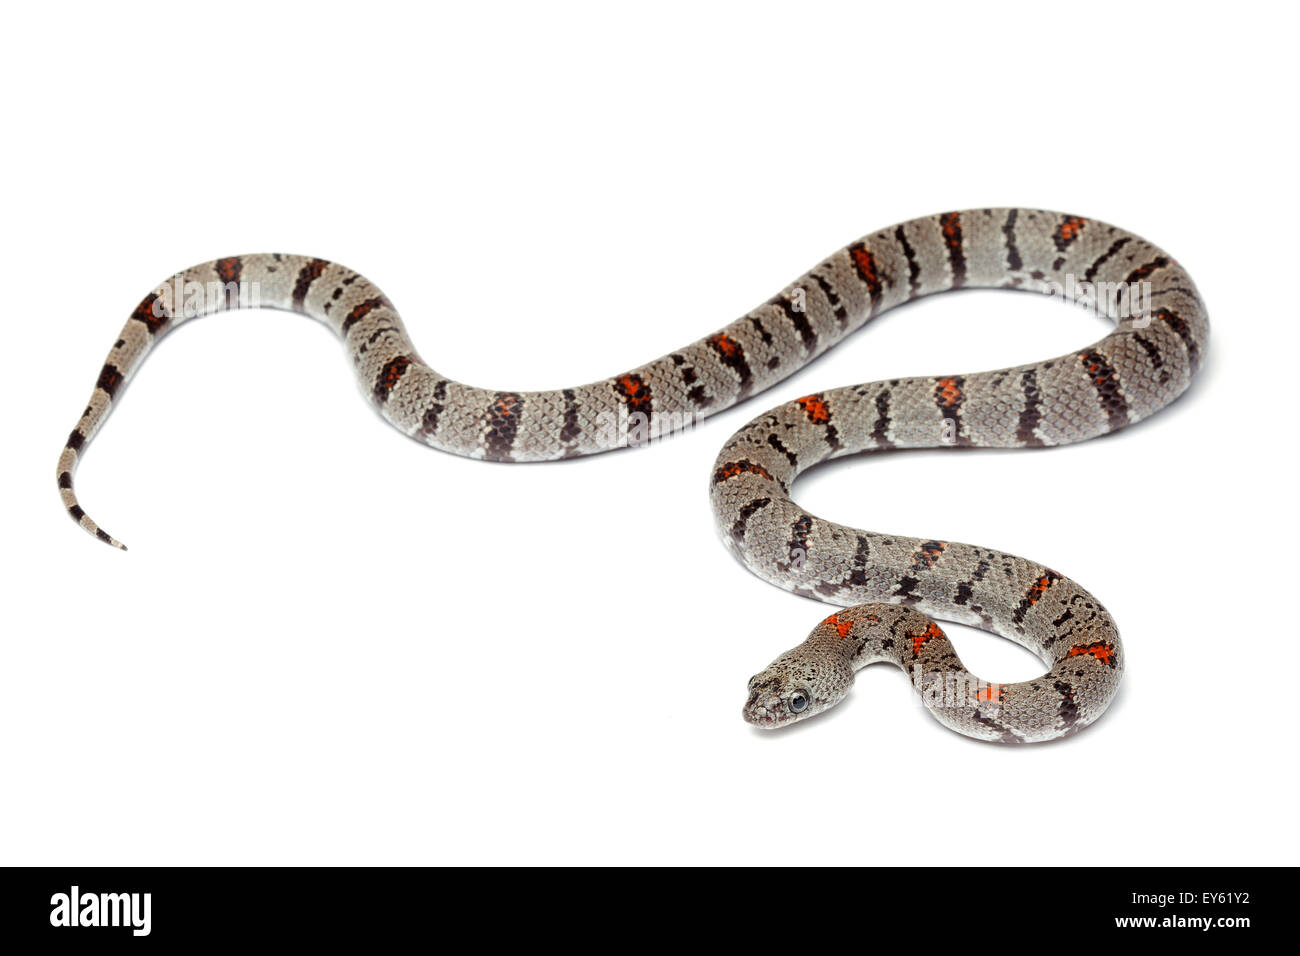 Gray Banded Kingsnake Stock Photos & Gray Banded Kingsnake